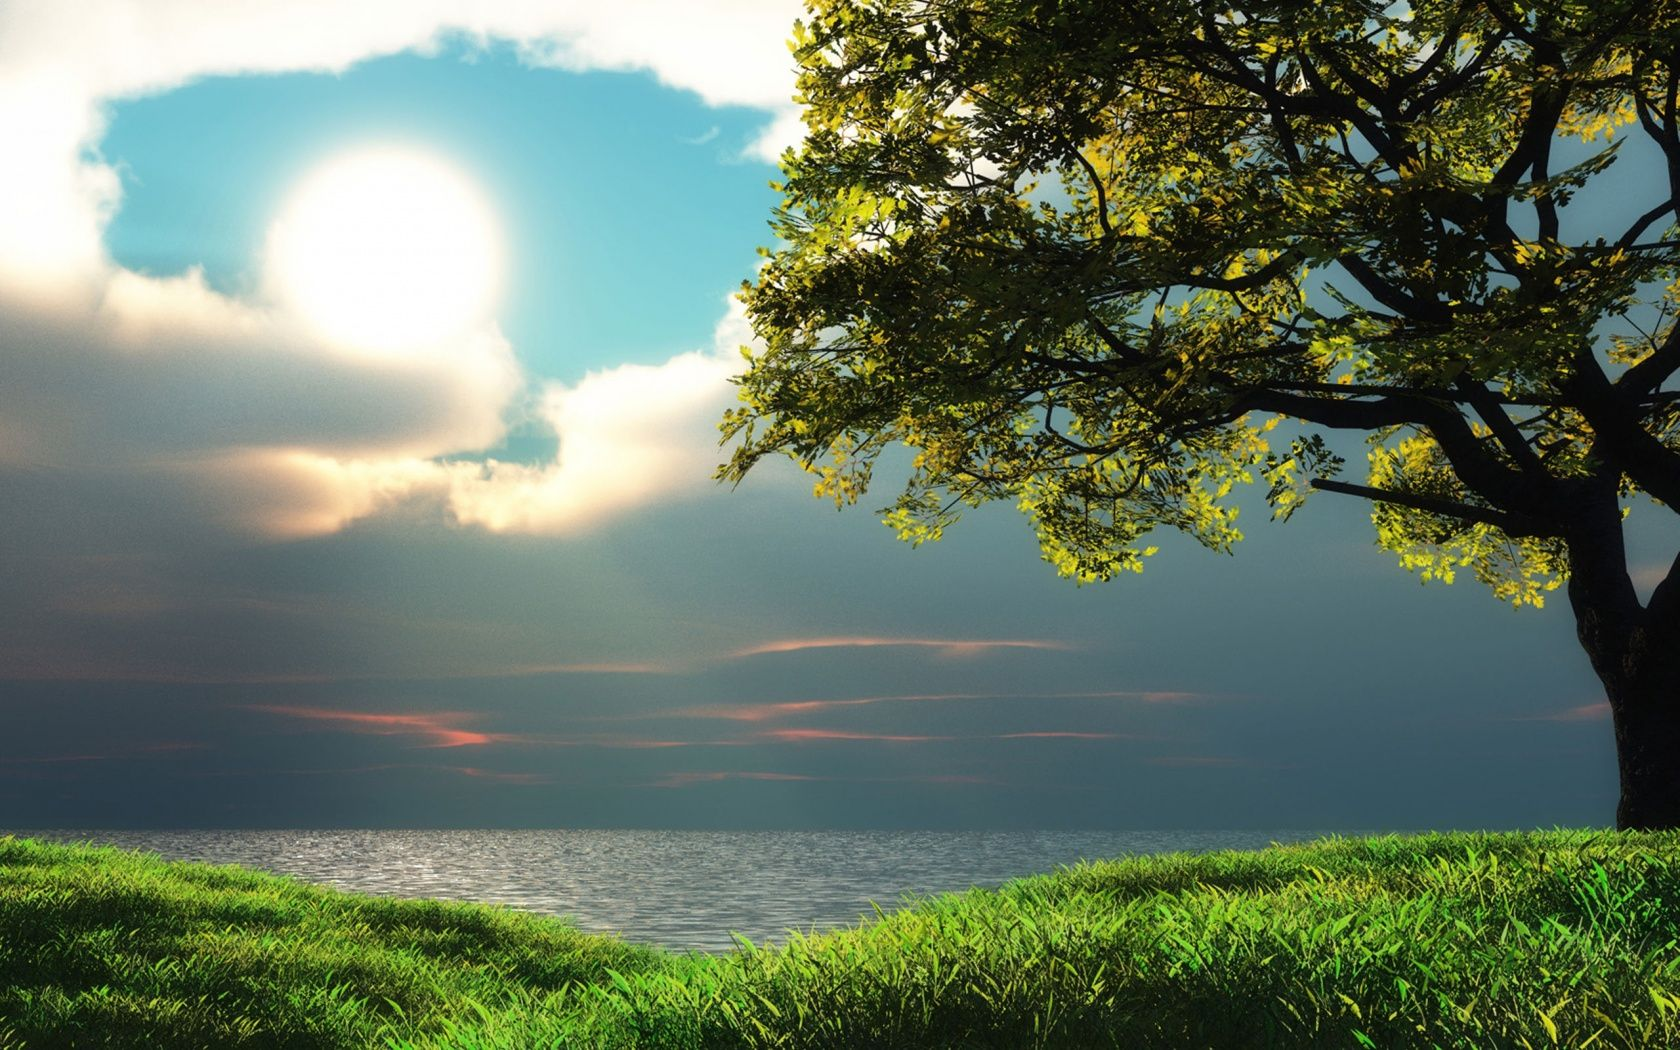 Cool Places | Cool Places for Summer - HD Wallpapers Widescreen - 1680x1050